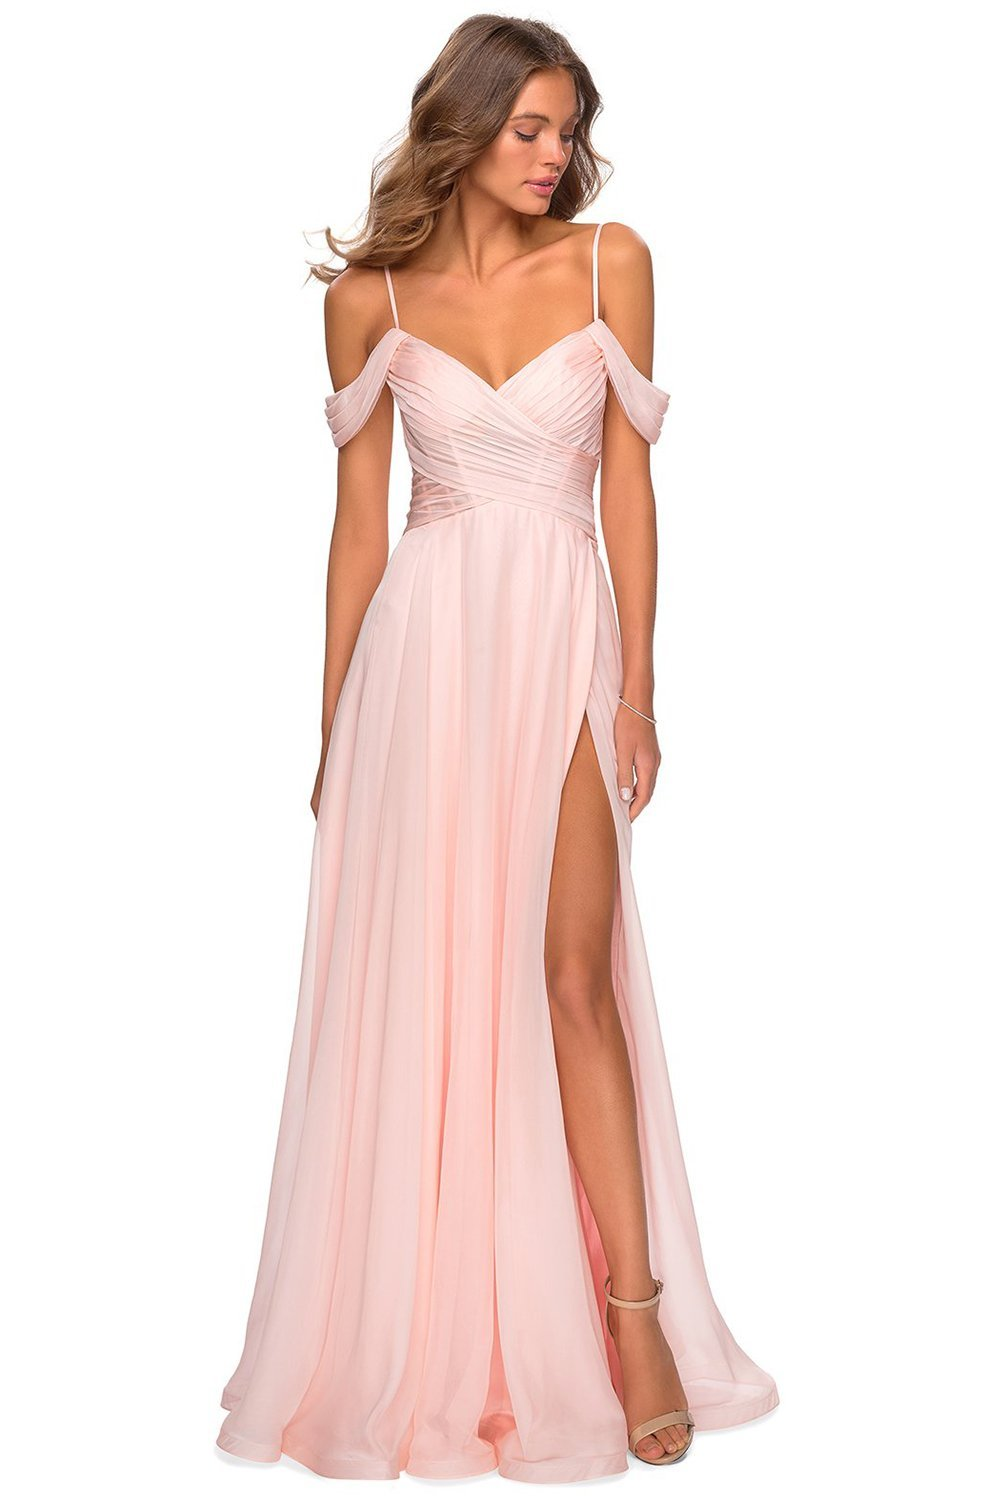 La Femme - Ruched Cold Shoulder A-Line Evening Dress 28942SC In Pink